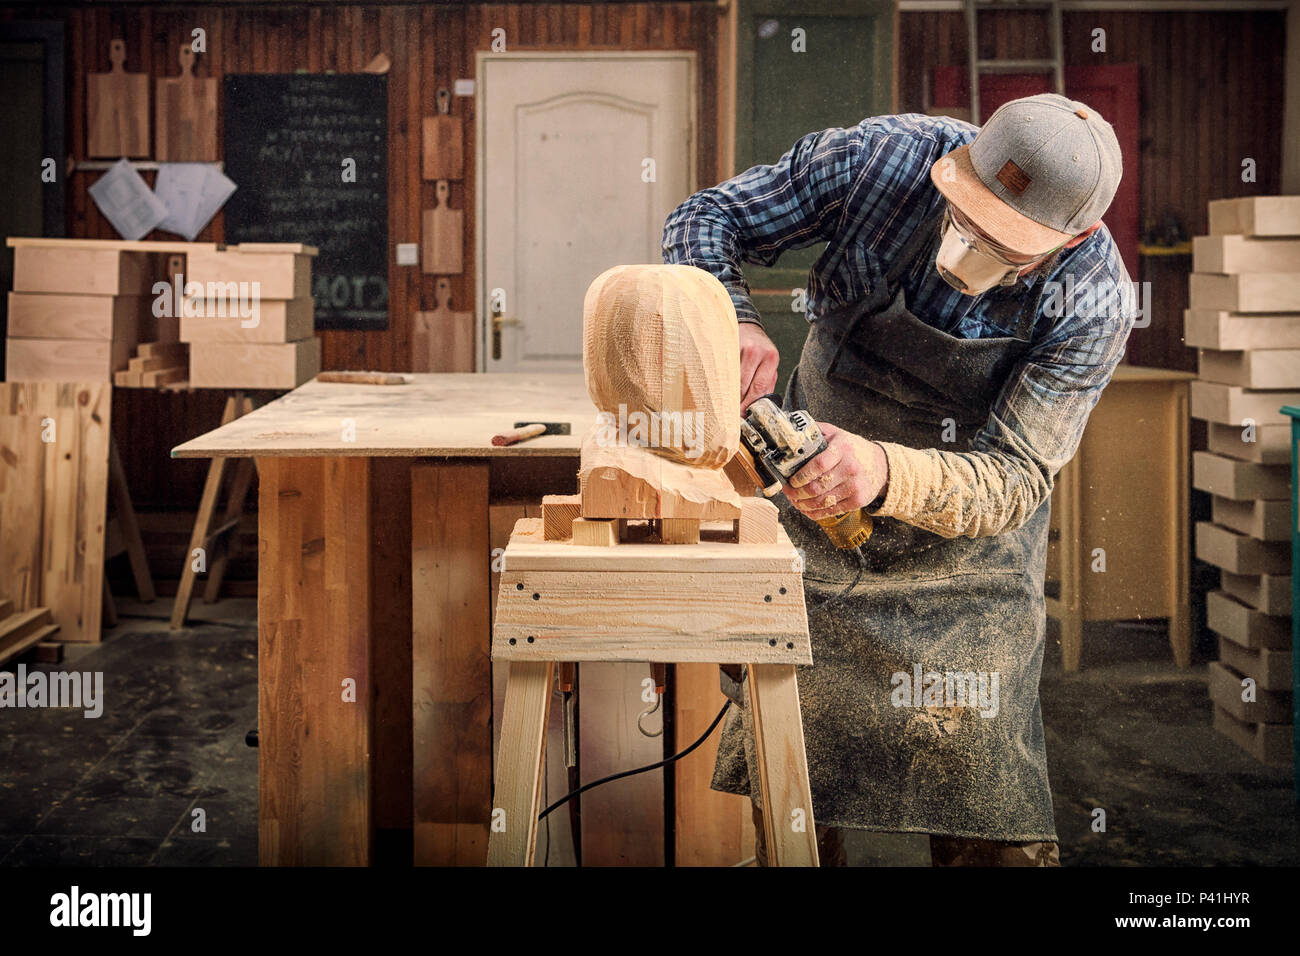 Experienced carpenter in work clothes and small buiness owner working in woodwork workshop, processes the board with an angle grinder on the table is  Stock Photo